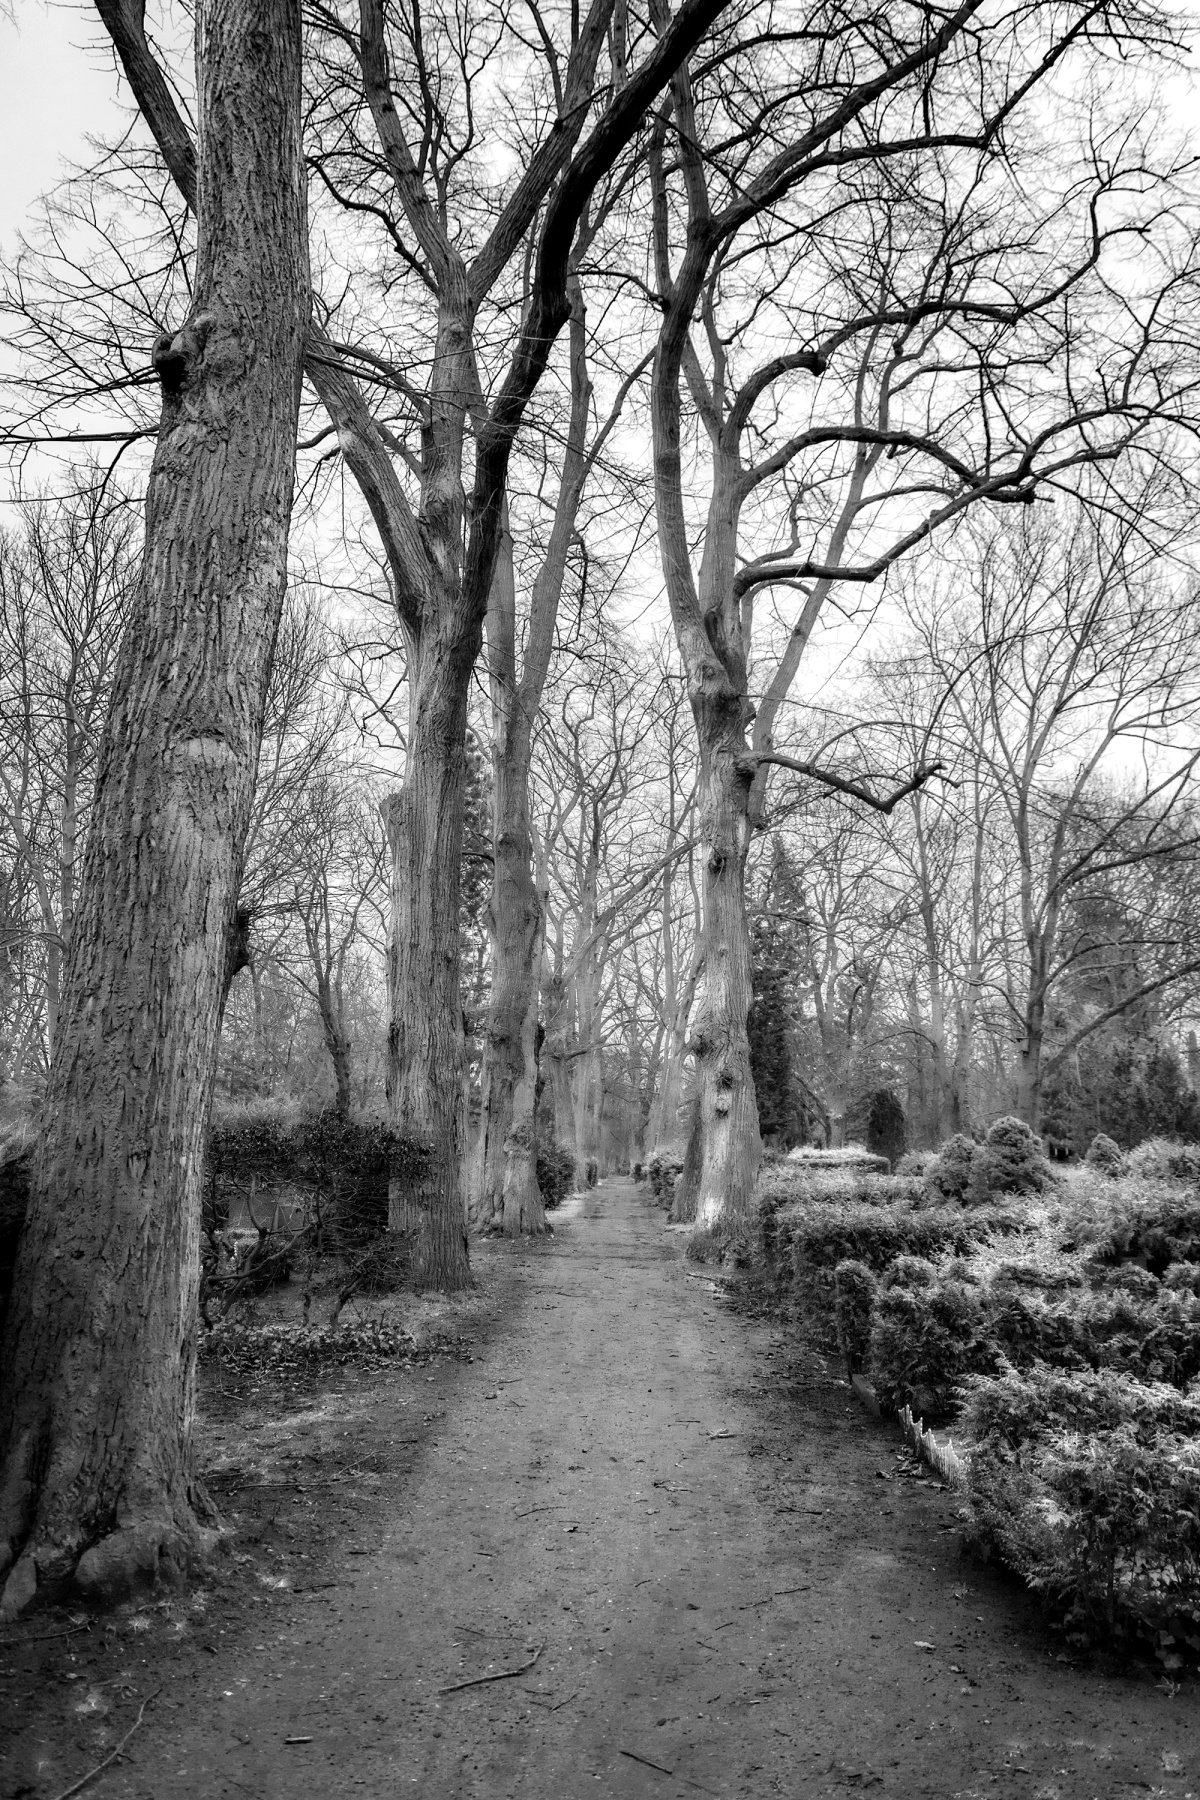 Cemetery Trees in Berlin